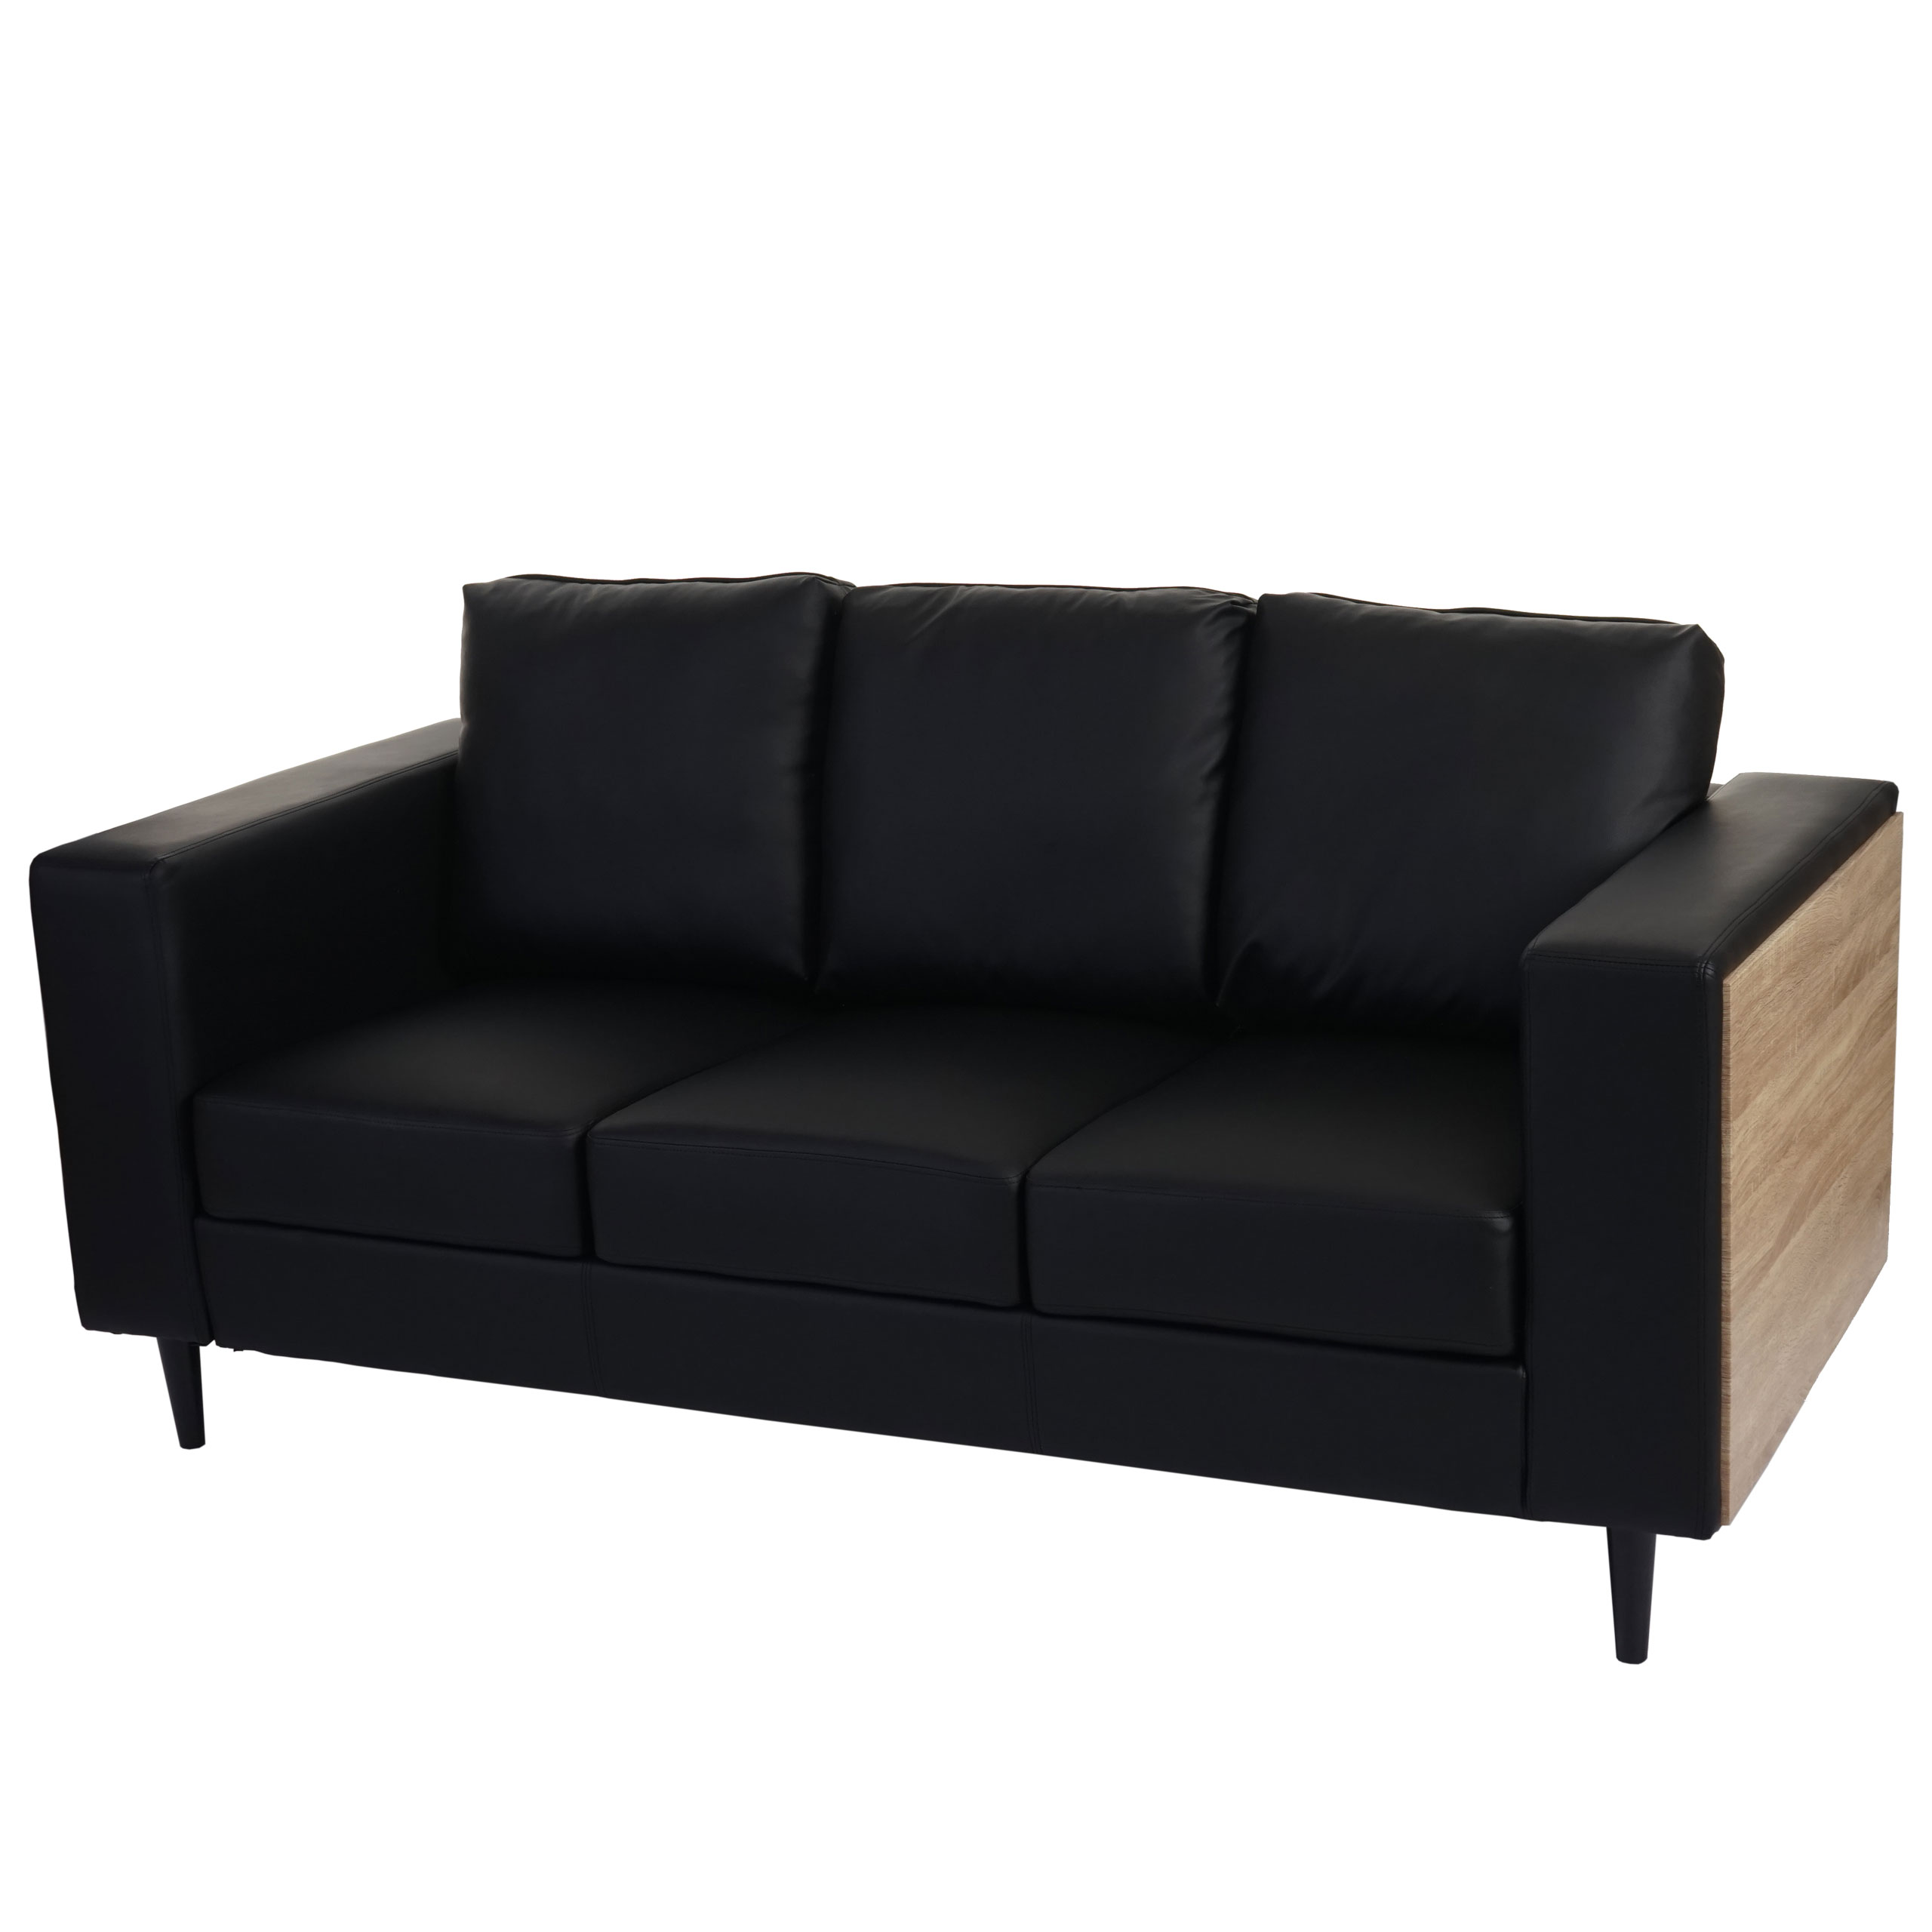 sofagarnit ur nancy loungesofa sessel 2er sofa 3er sofa. Black Bedroom Furniture Sets. Home Design Ideas